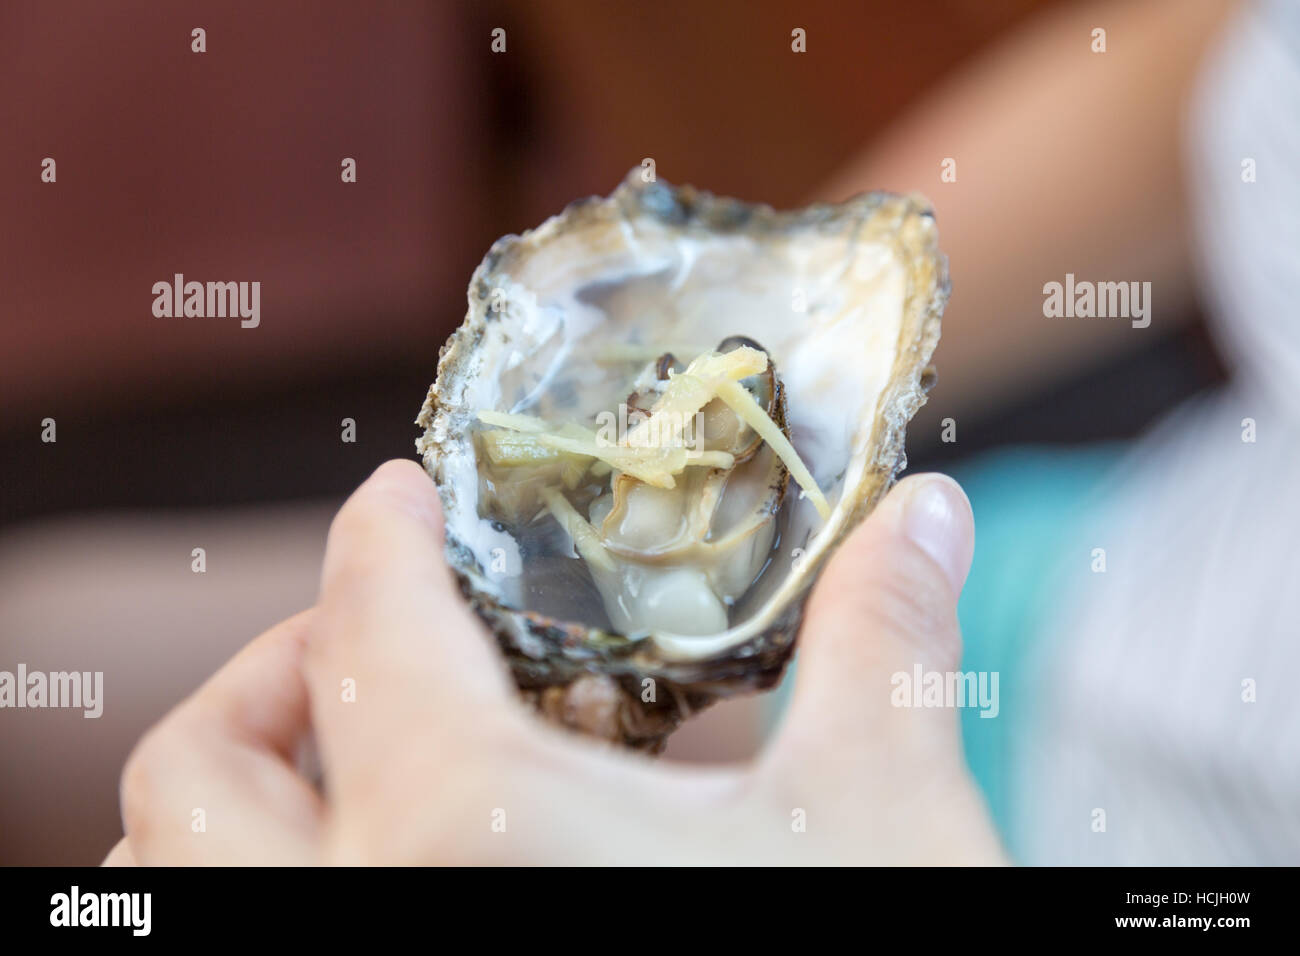 Hand grabs an partially cooked open shell oyster with ginger, Santa Catarina, Brazil - Stock Image